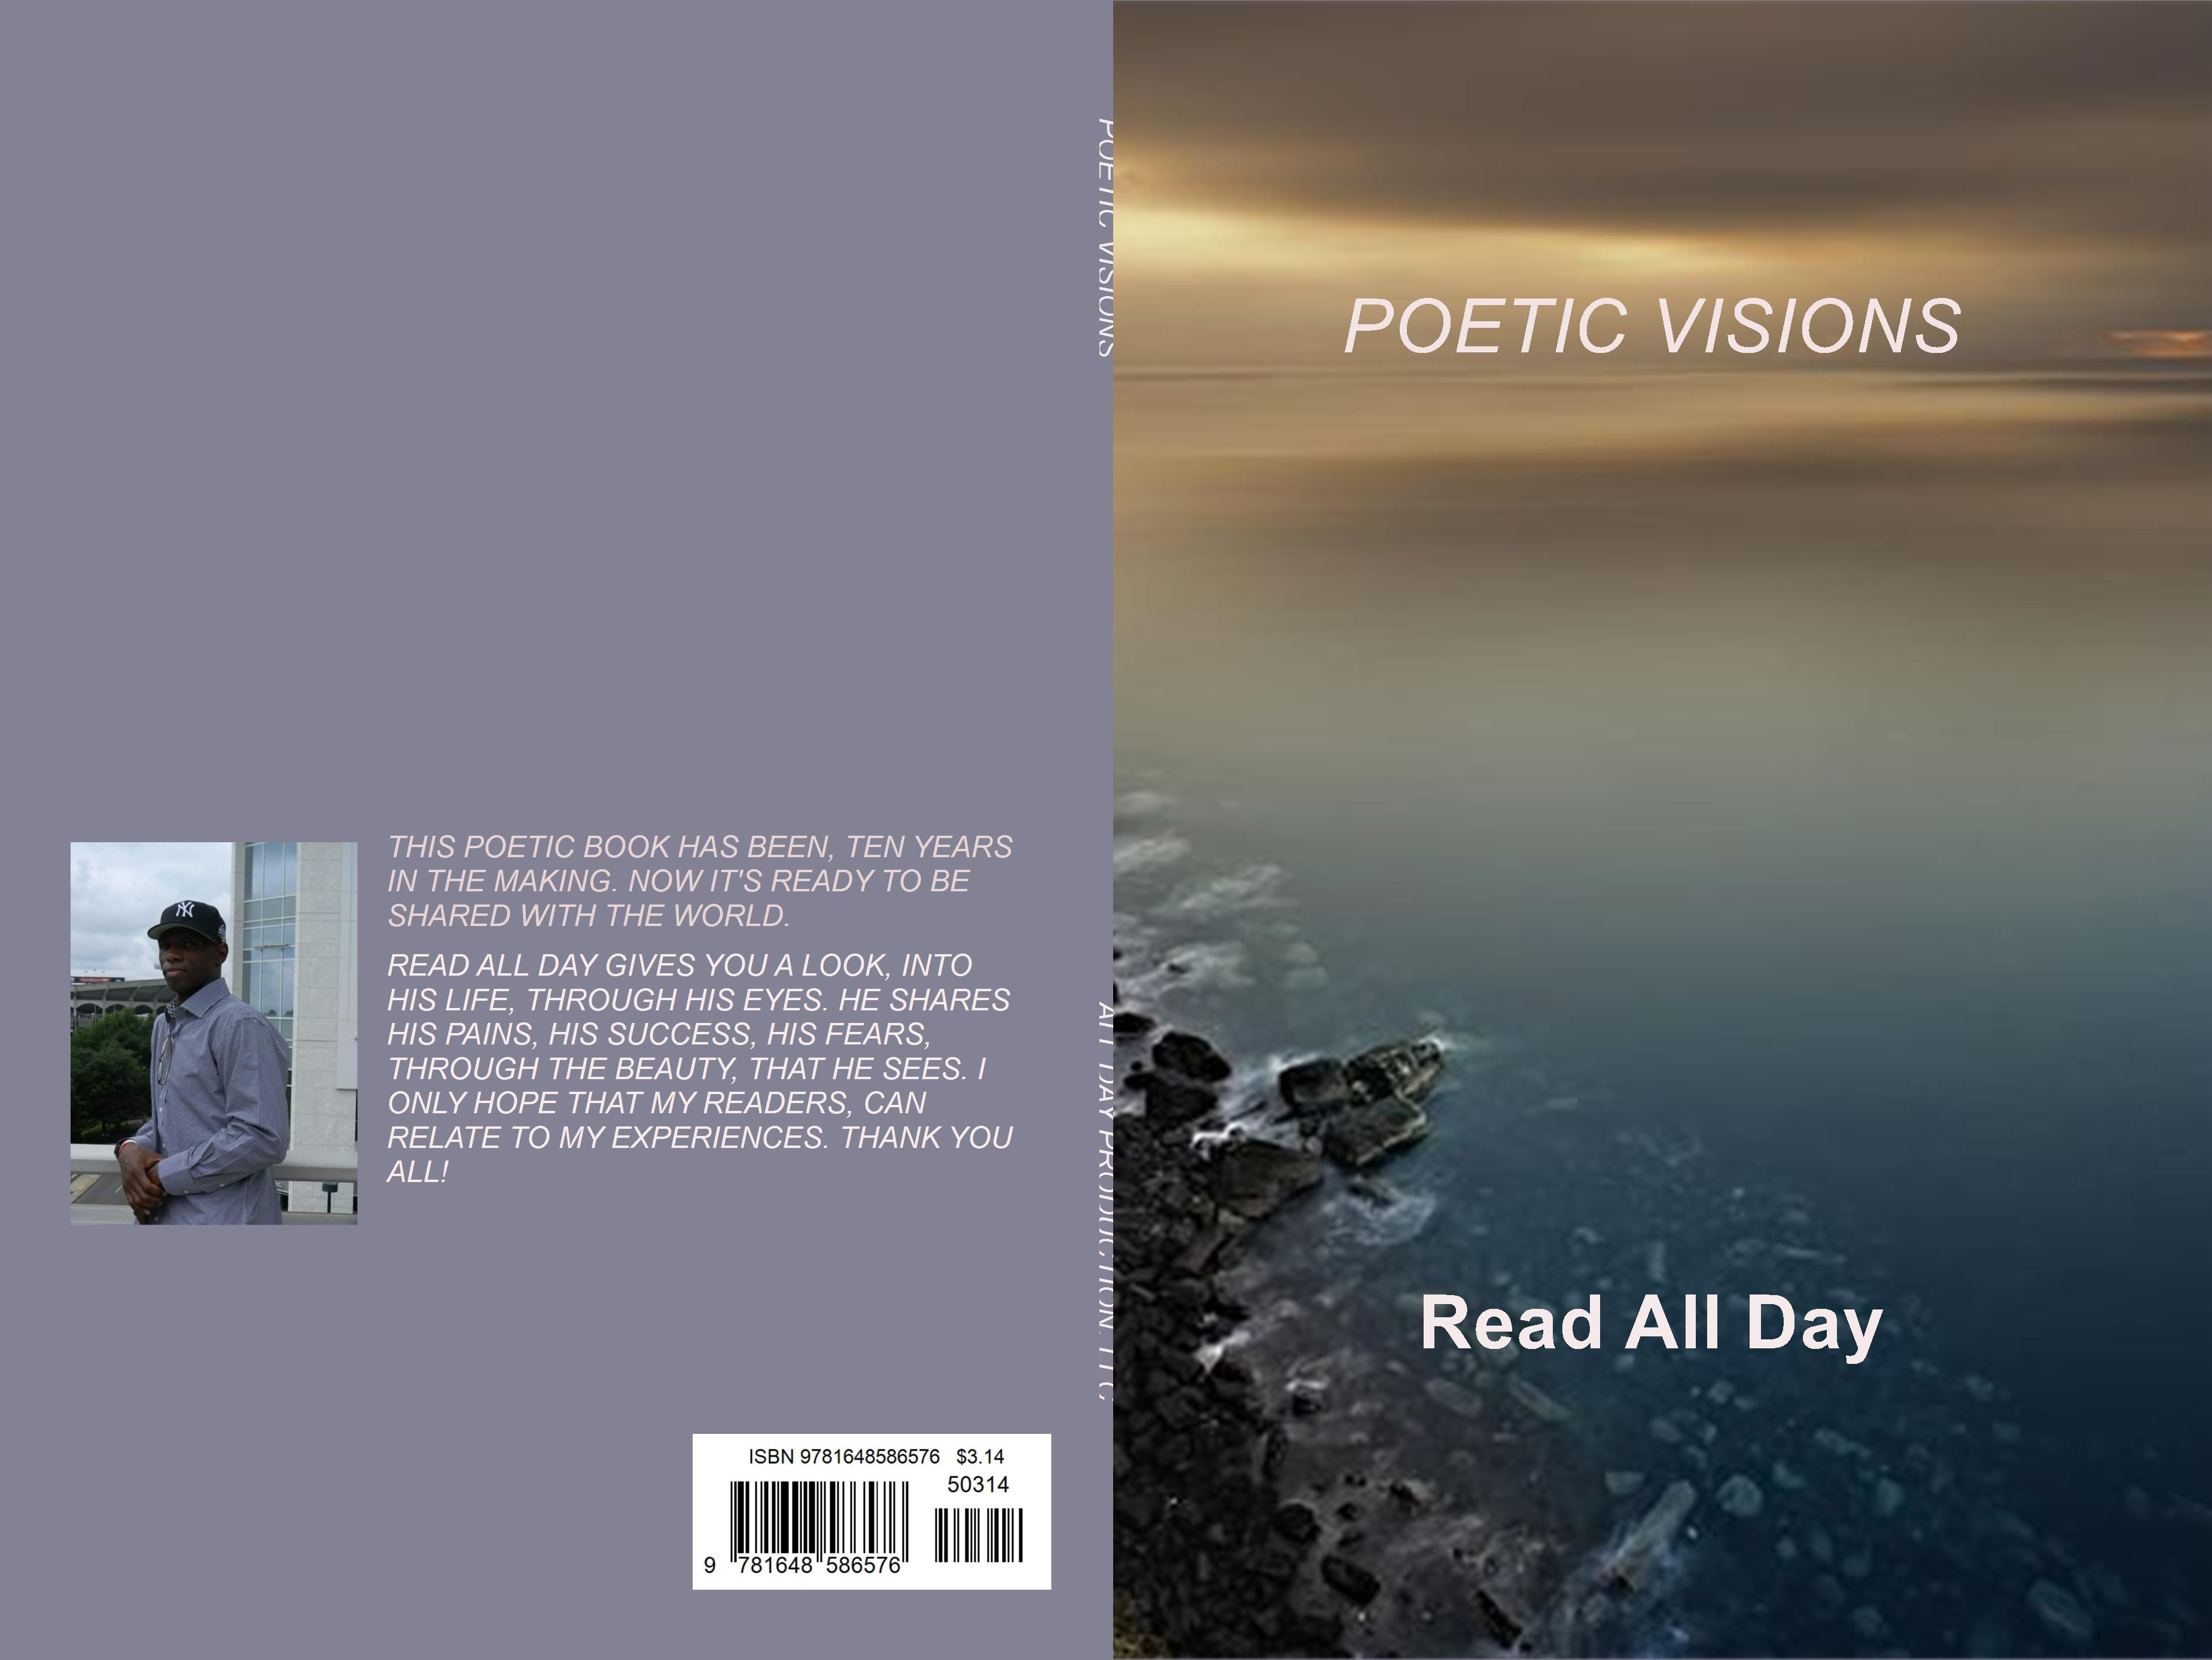 POETIC VISIONS cover image